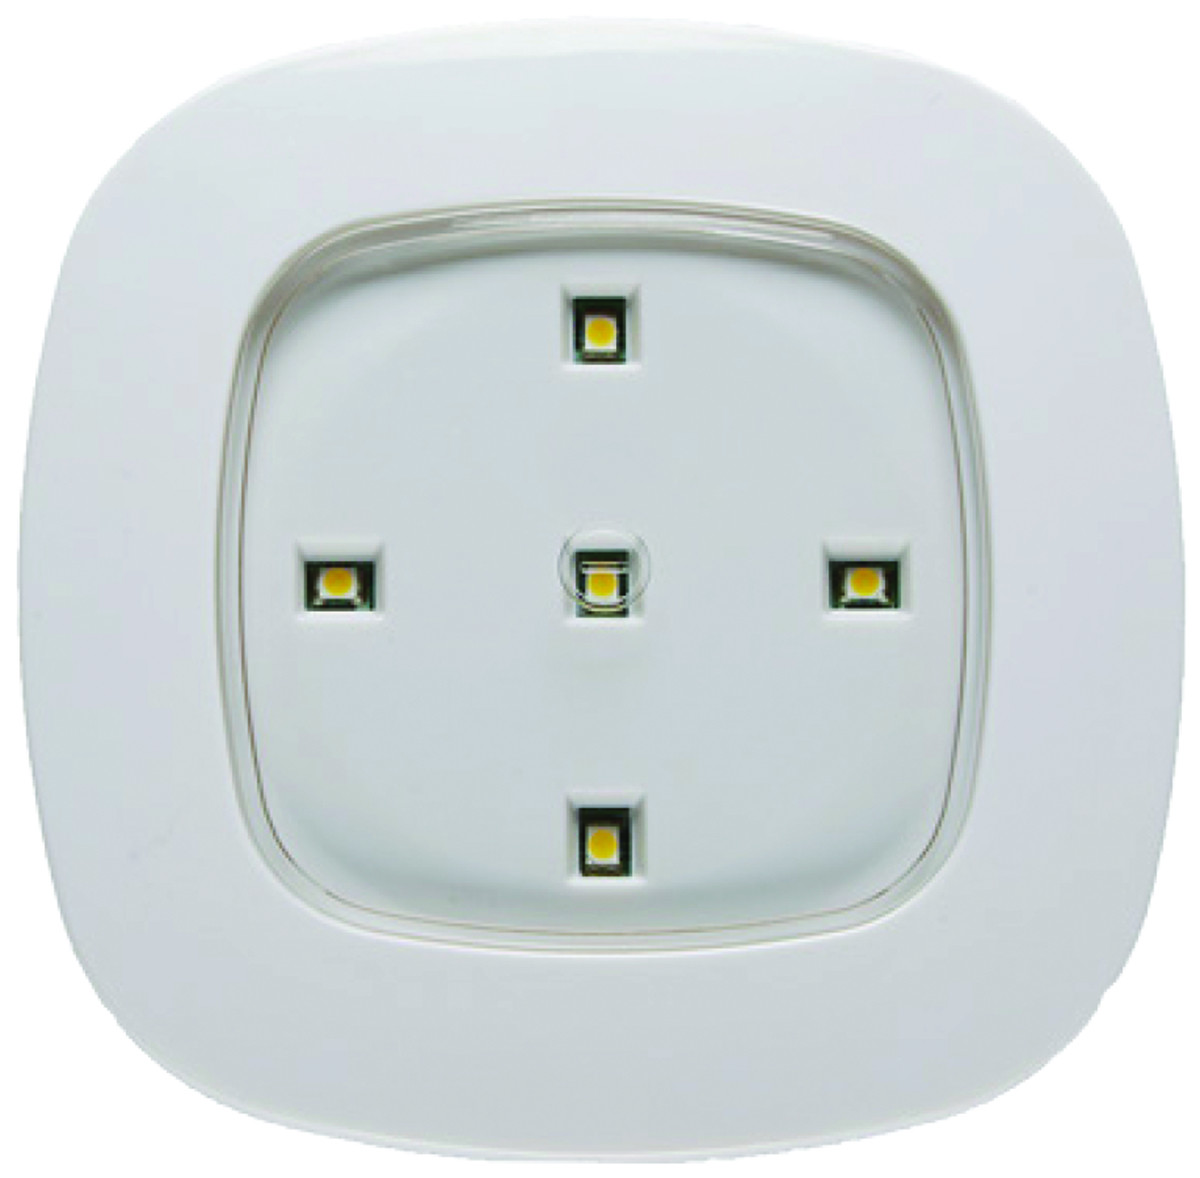 Led Wireless Ceiling Light By Fulcrum White 30032 308 Remote Control Battery Operated Light It